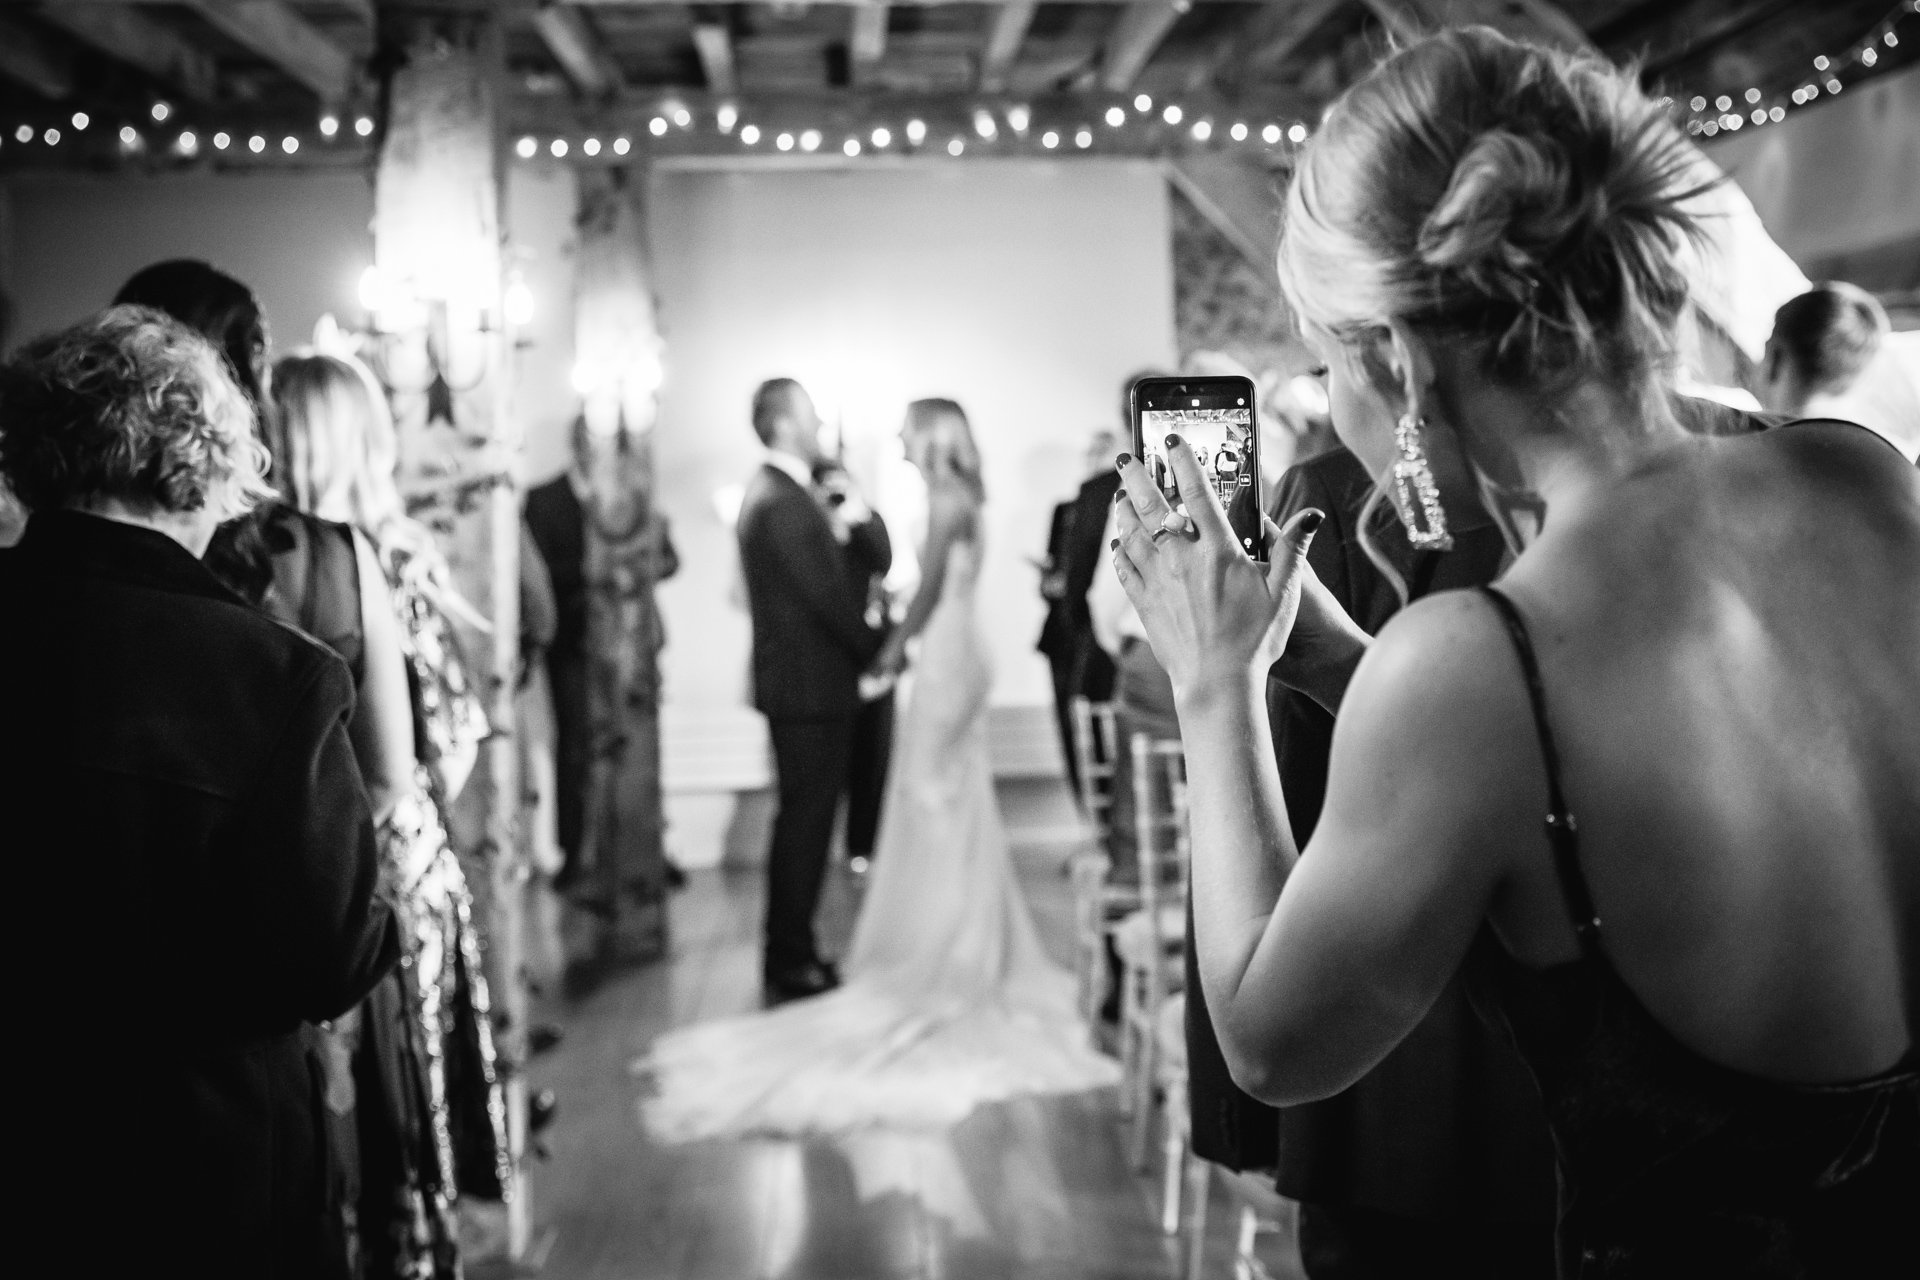 guest takes phone photo of bride and groom during the ceremony